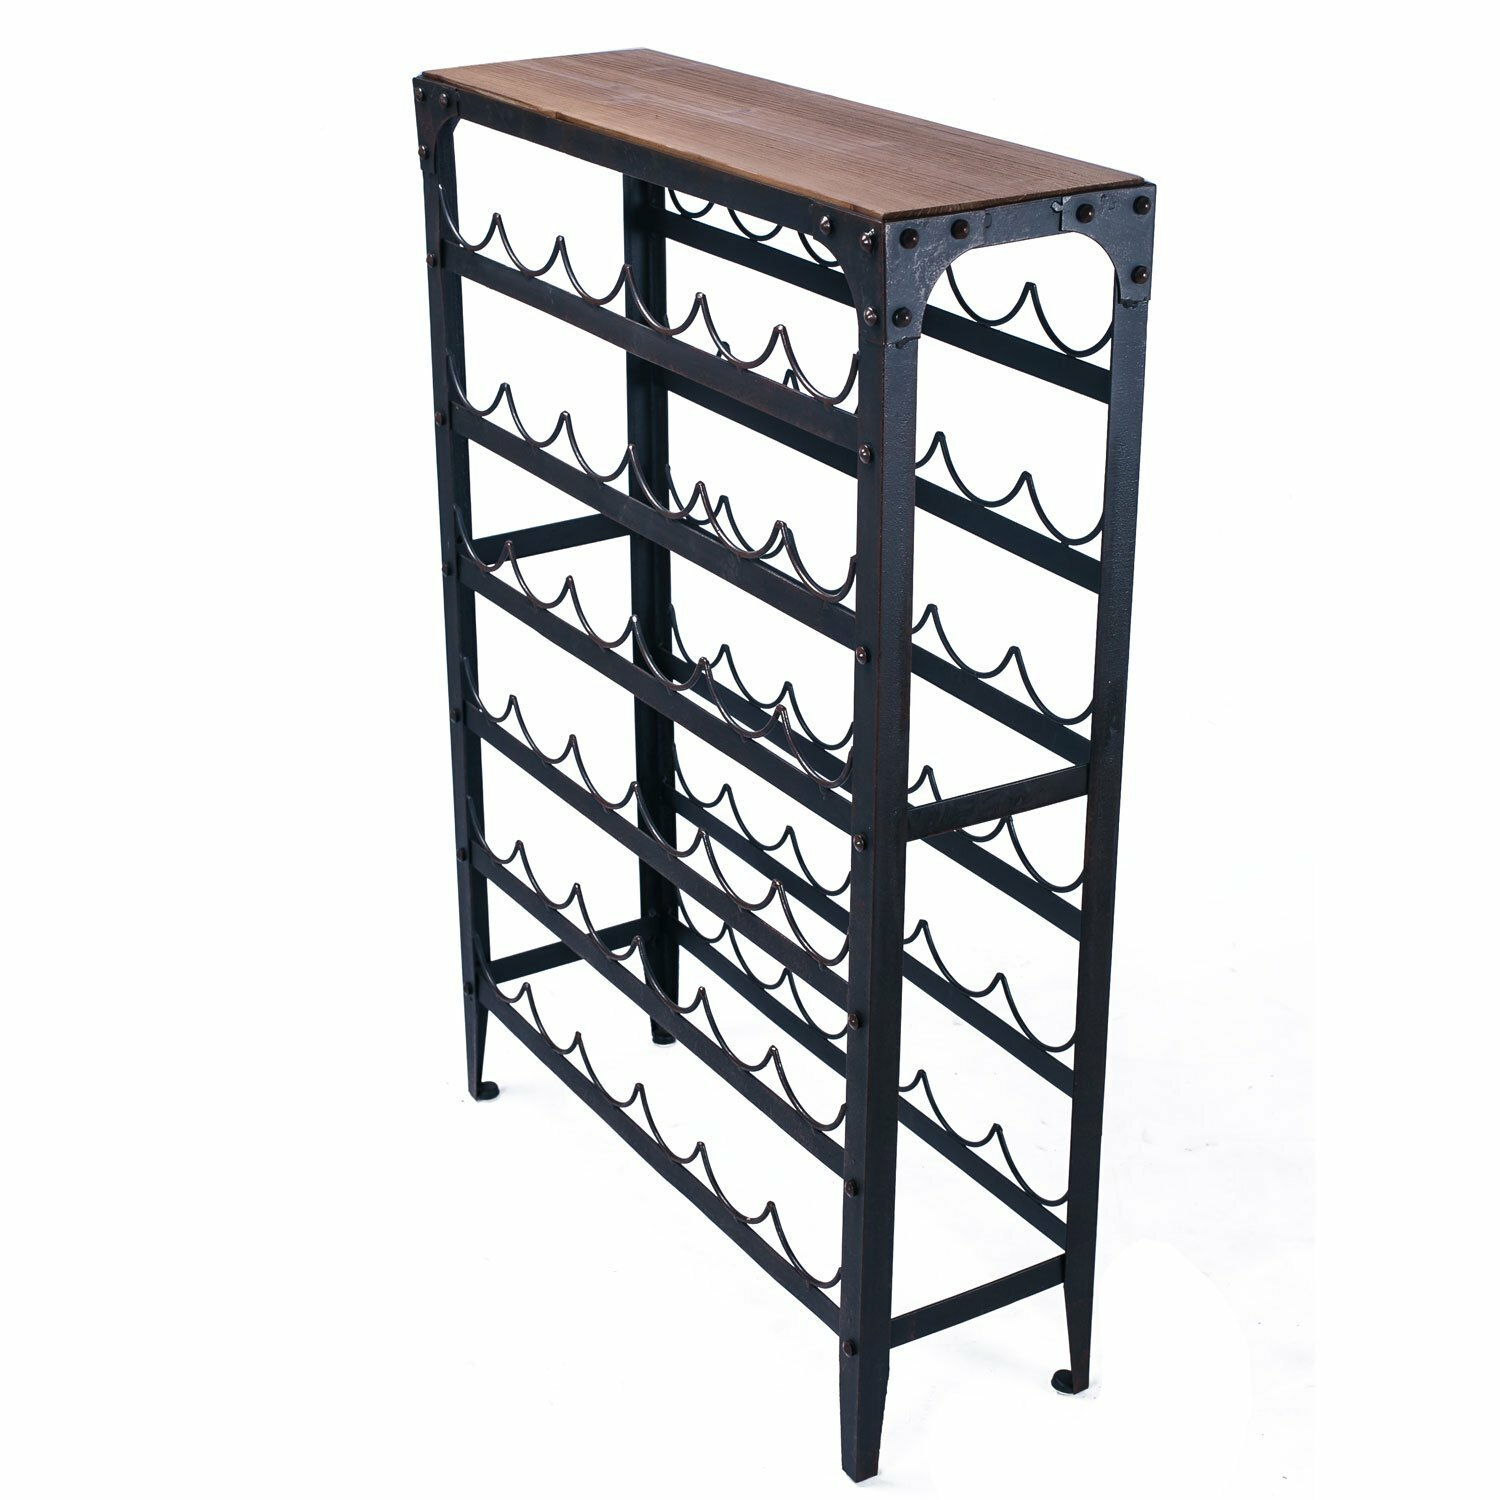 adecotrading 36 bottle floor wine rack reviews wayfair